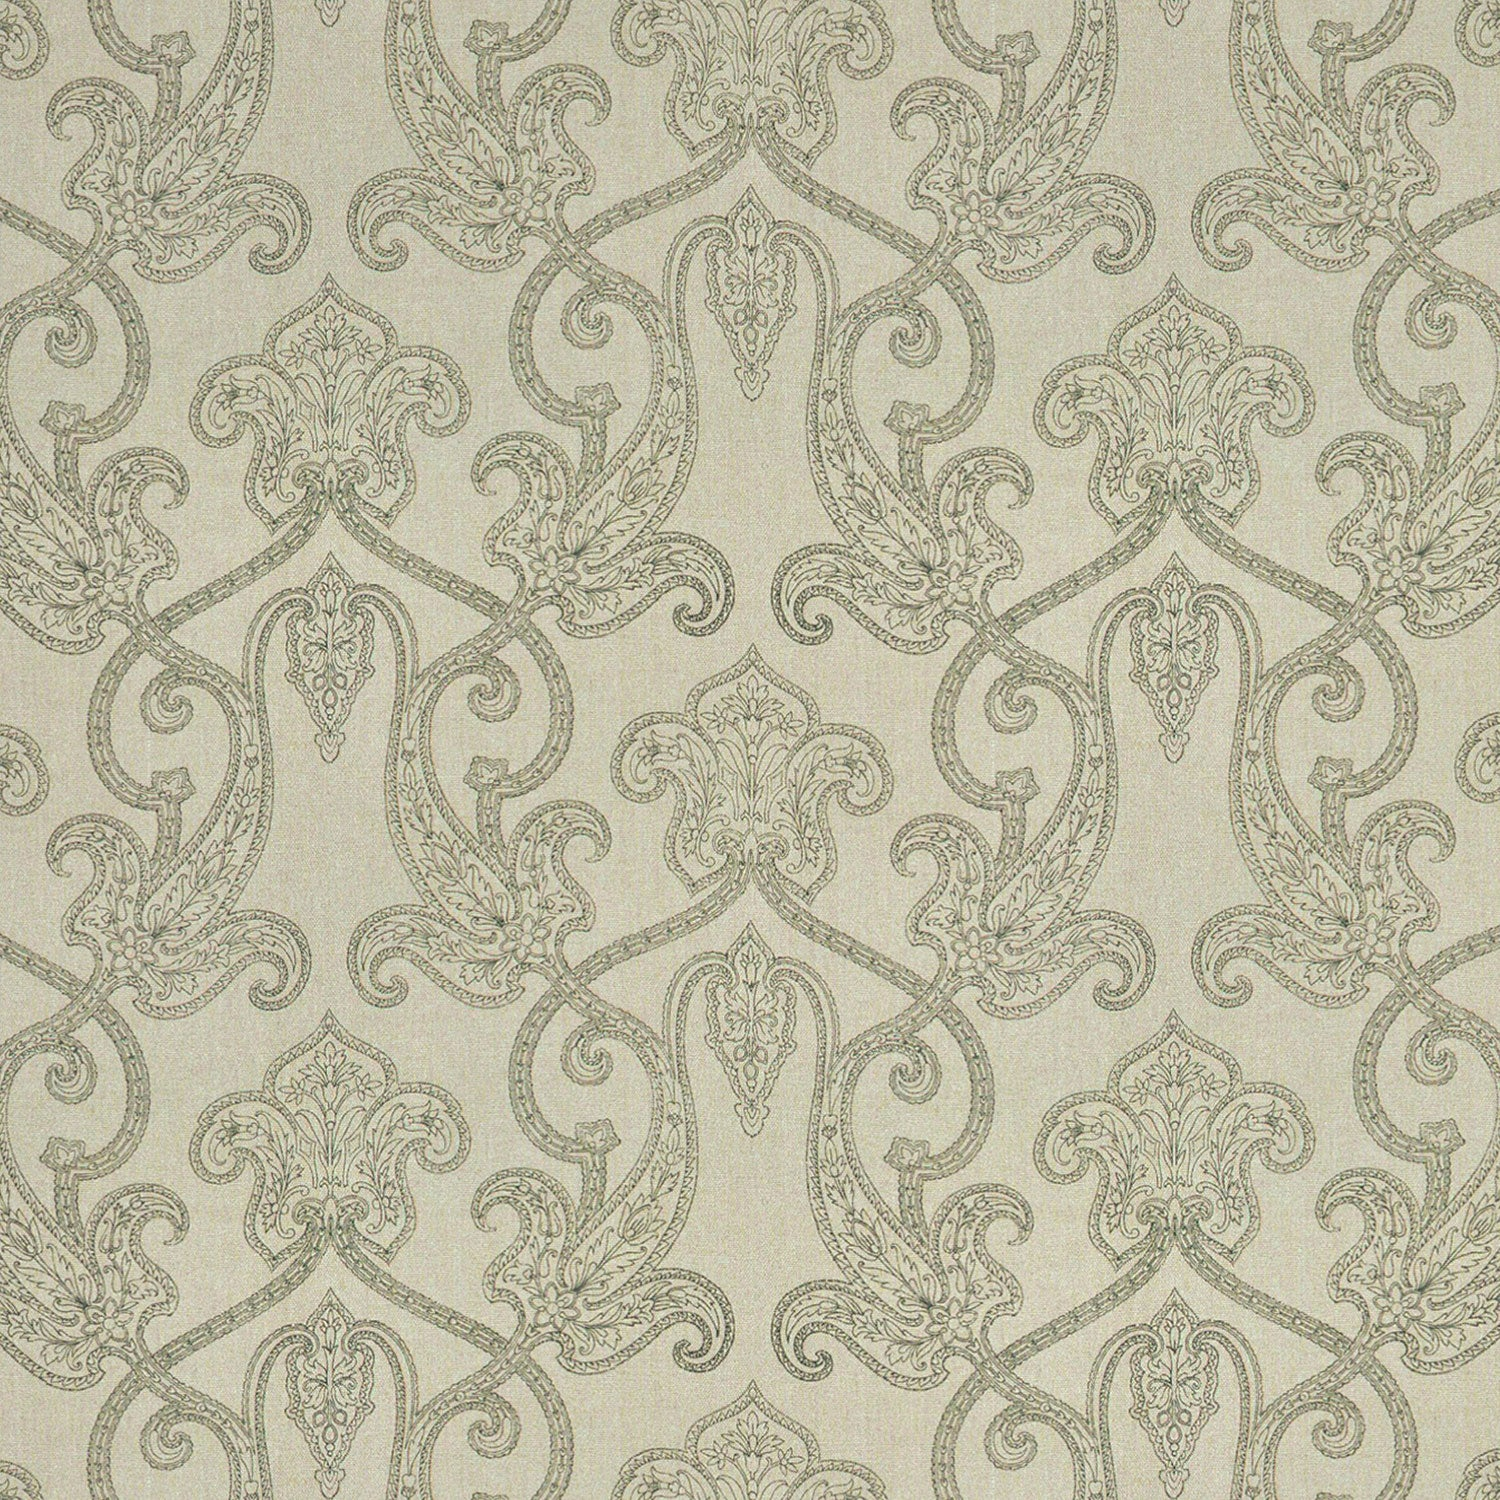 Light neutral linen fabric with dark grey printed paisley design suitable for both curtains and upholstery.